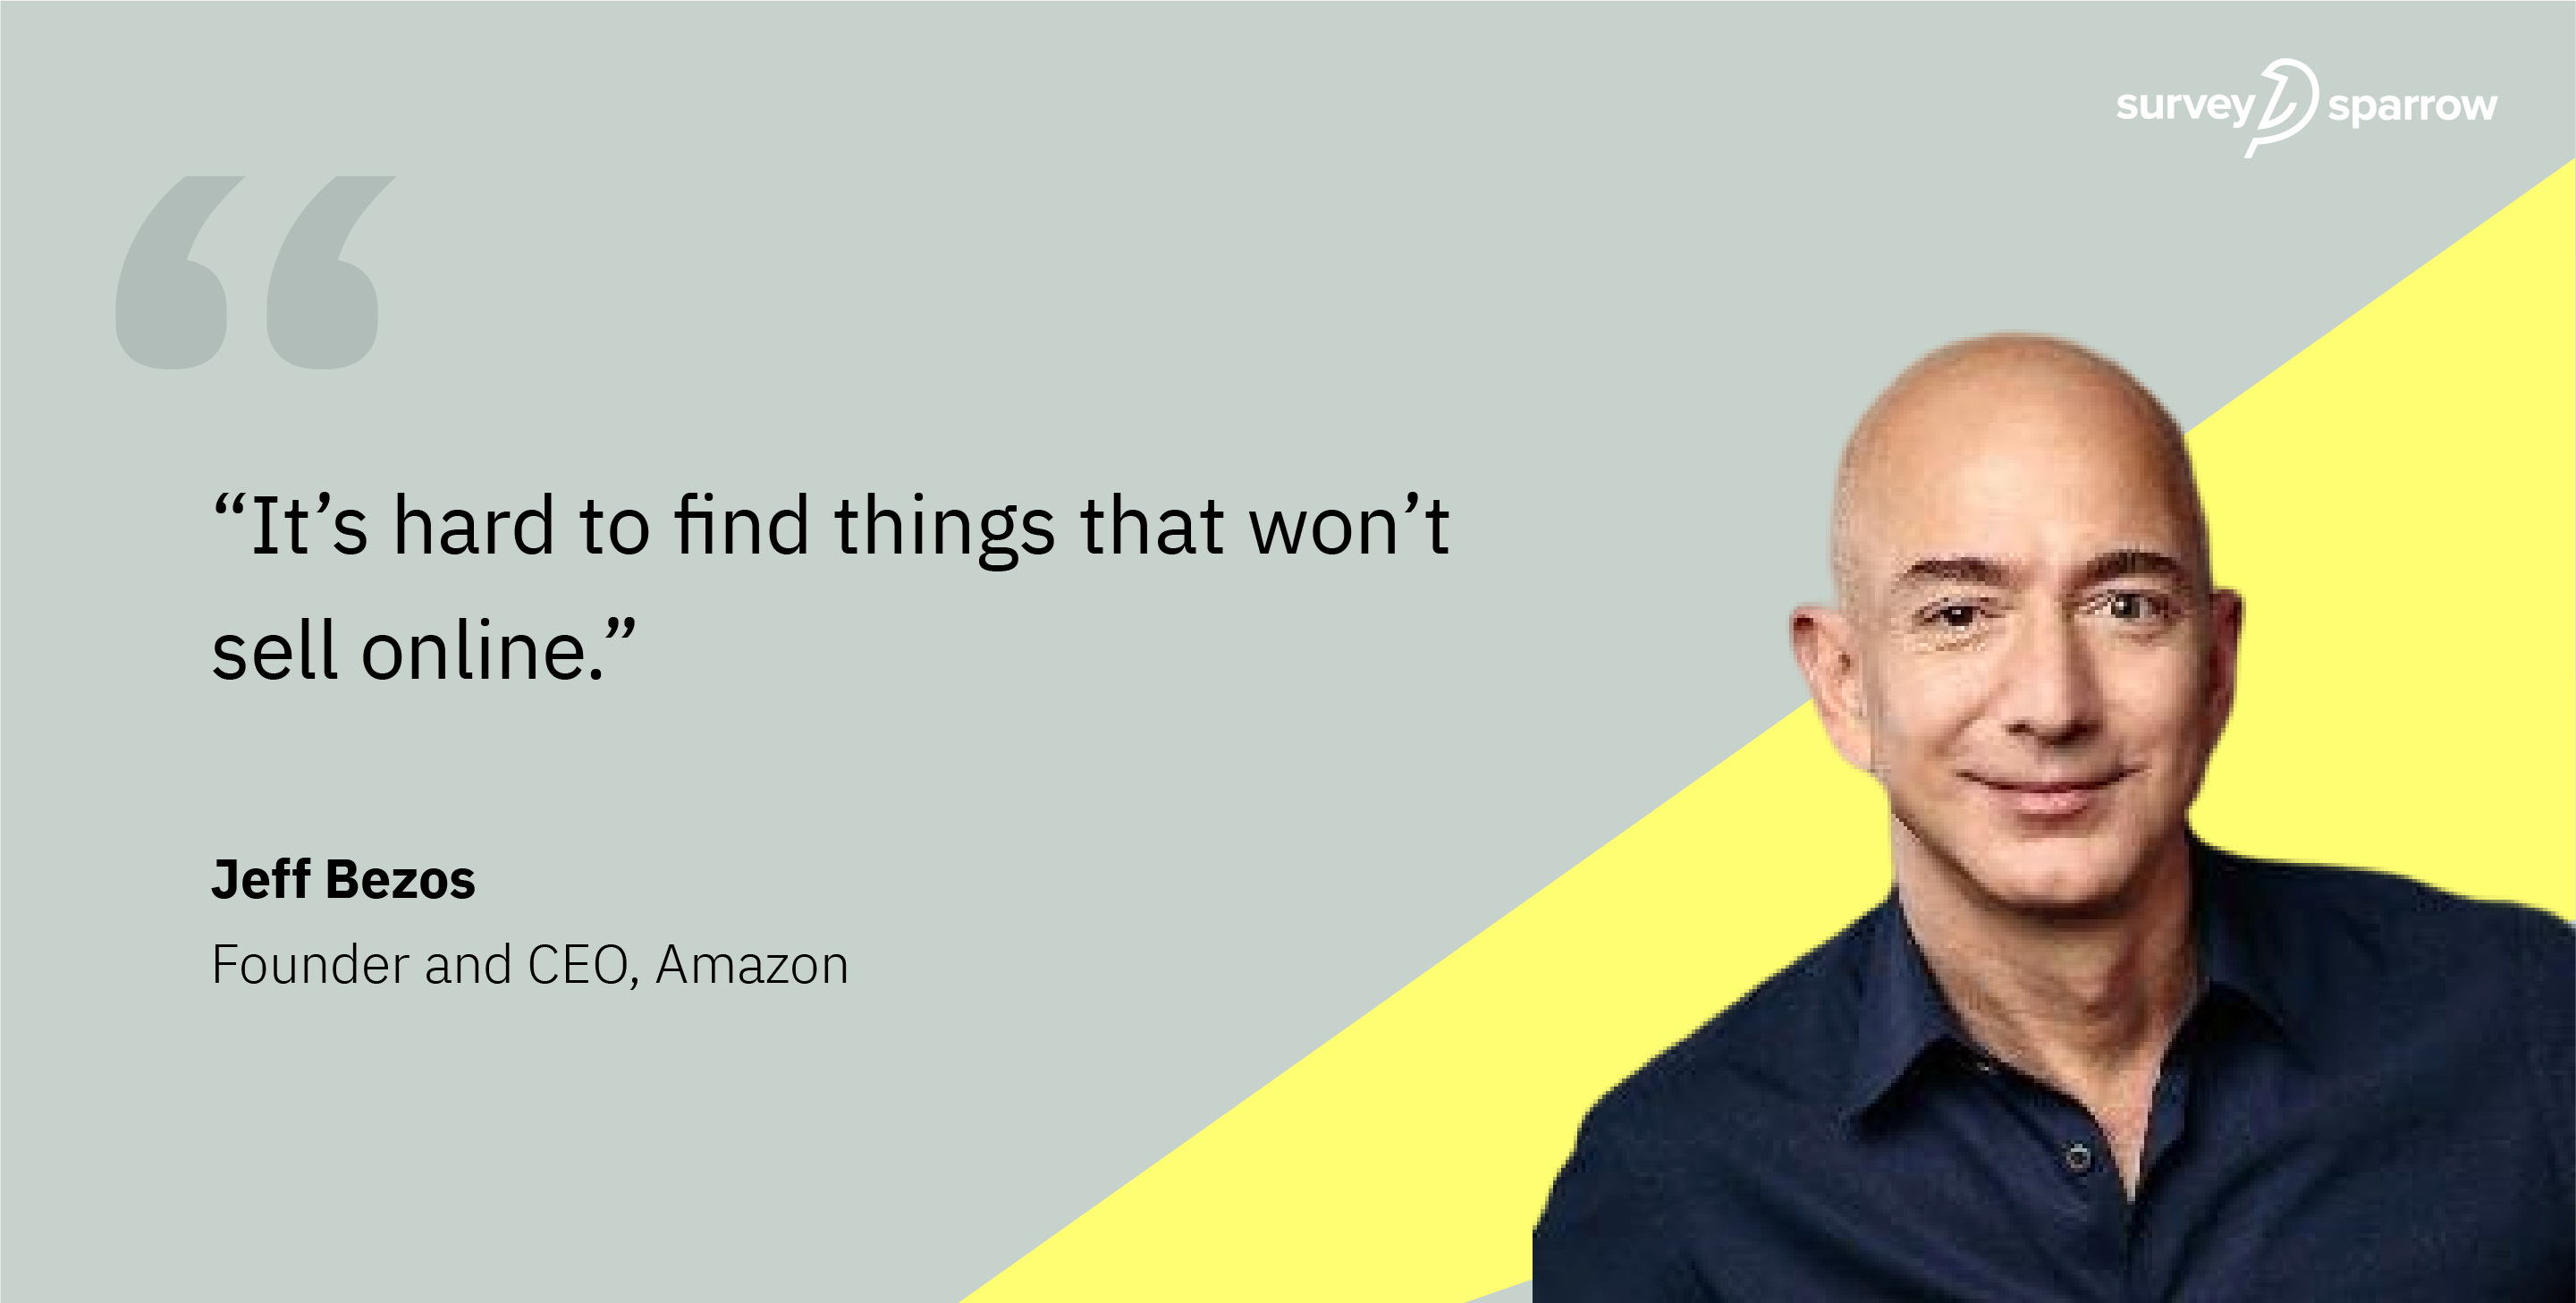 Jeff Bezos, the most well-known entrepreneur marketing prodigy quote.